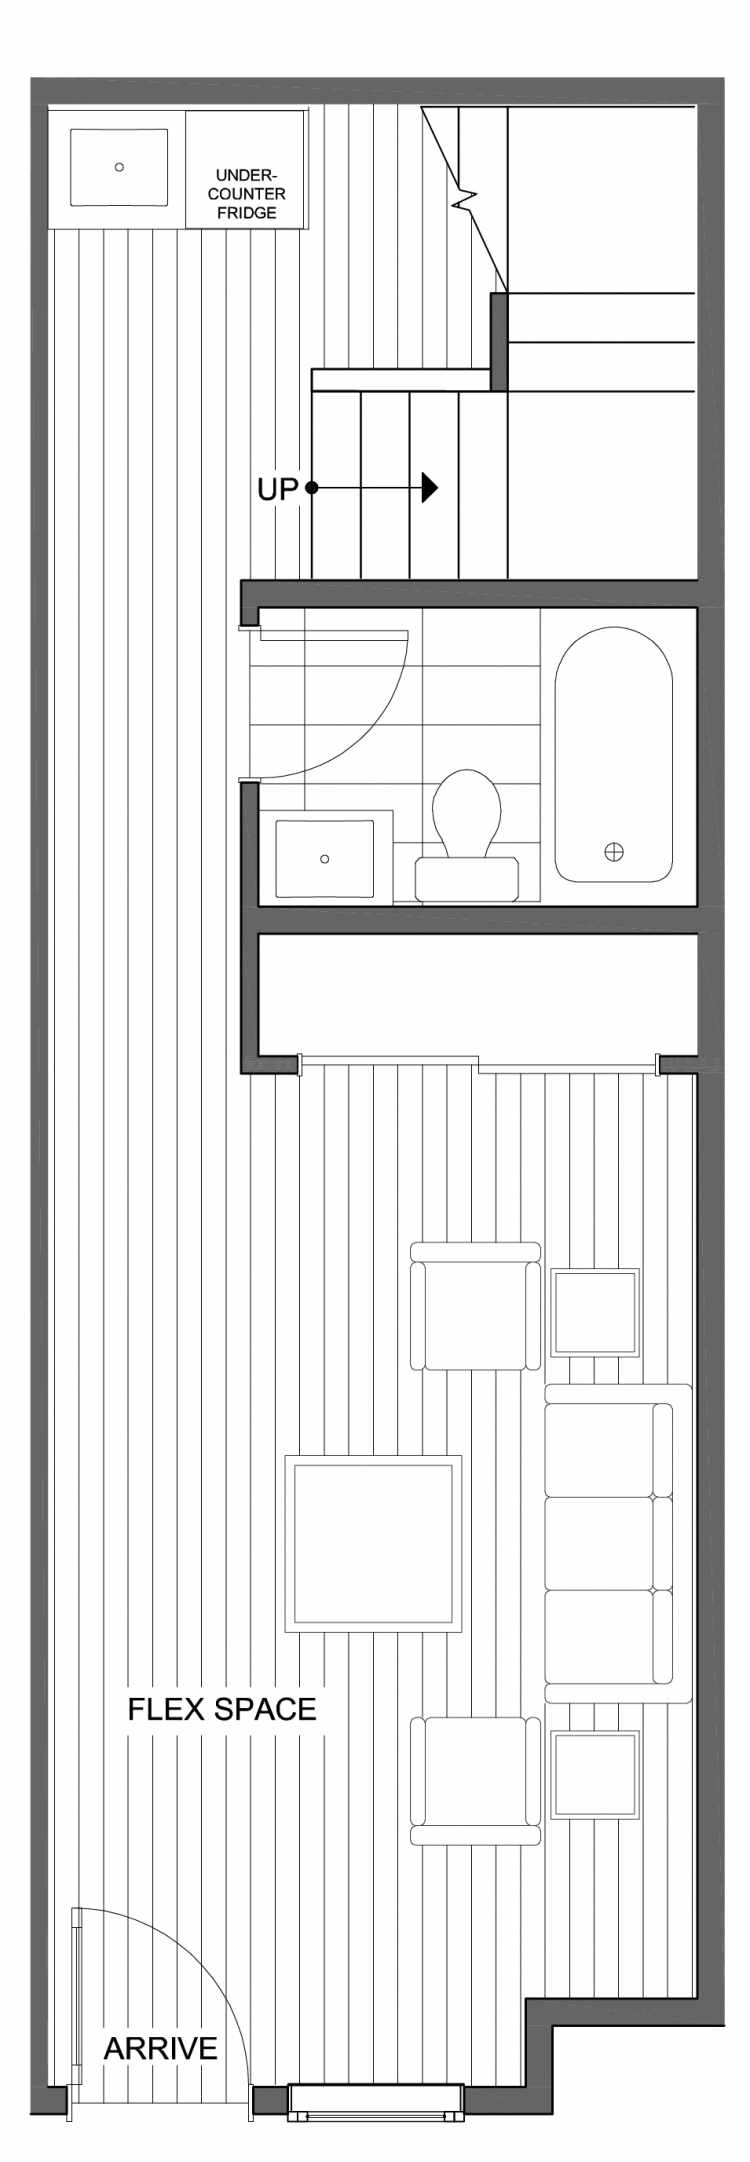 First Floor Plan of 804 N 46th St, One of the Nino 15 West Townhomes in Fremont by Isola Homes